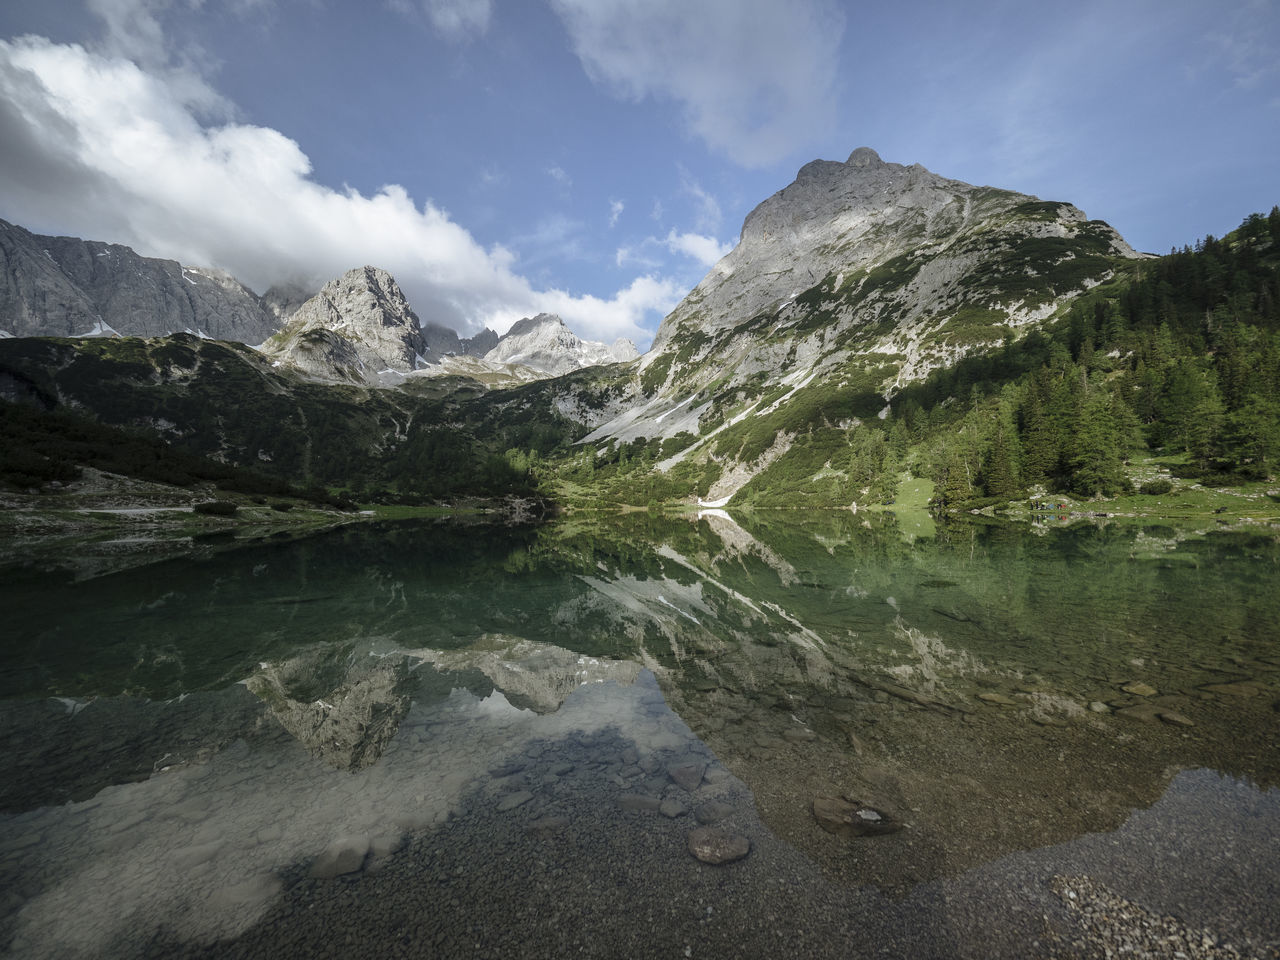 Seebensee, Tirol Beauty In Nature Cloud - Sky Day Lake Landscape Mountain Mountain Range Nature Nature No People Outdoors Scenery Scenics Sky Tiro Tirol  Tranquil Scene Tranquility Water Wilderness